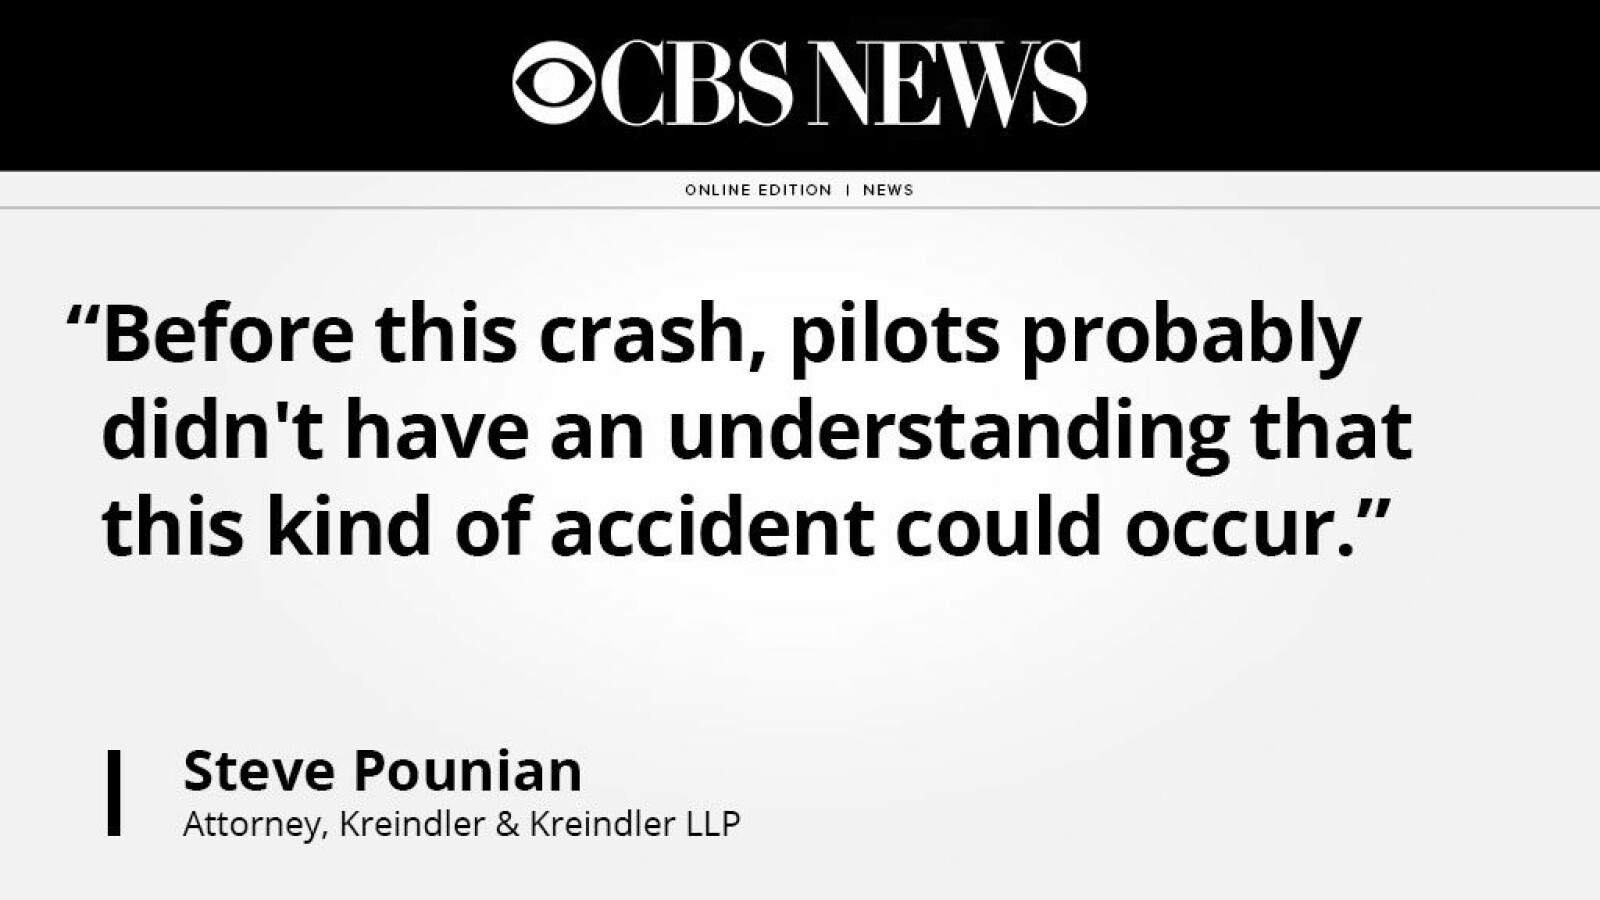 Aviation attorney Steven Pounian offers perspectives on anniversary of Flight 587 crash in NYC